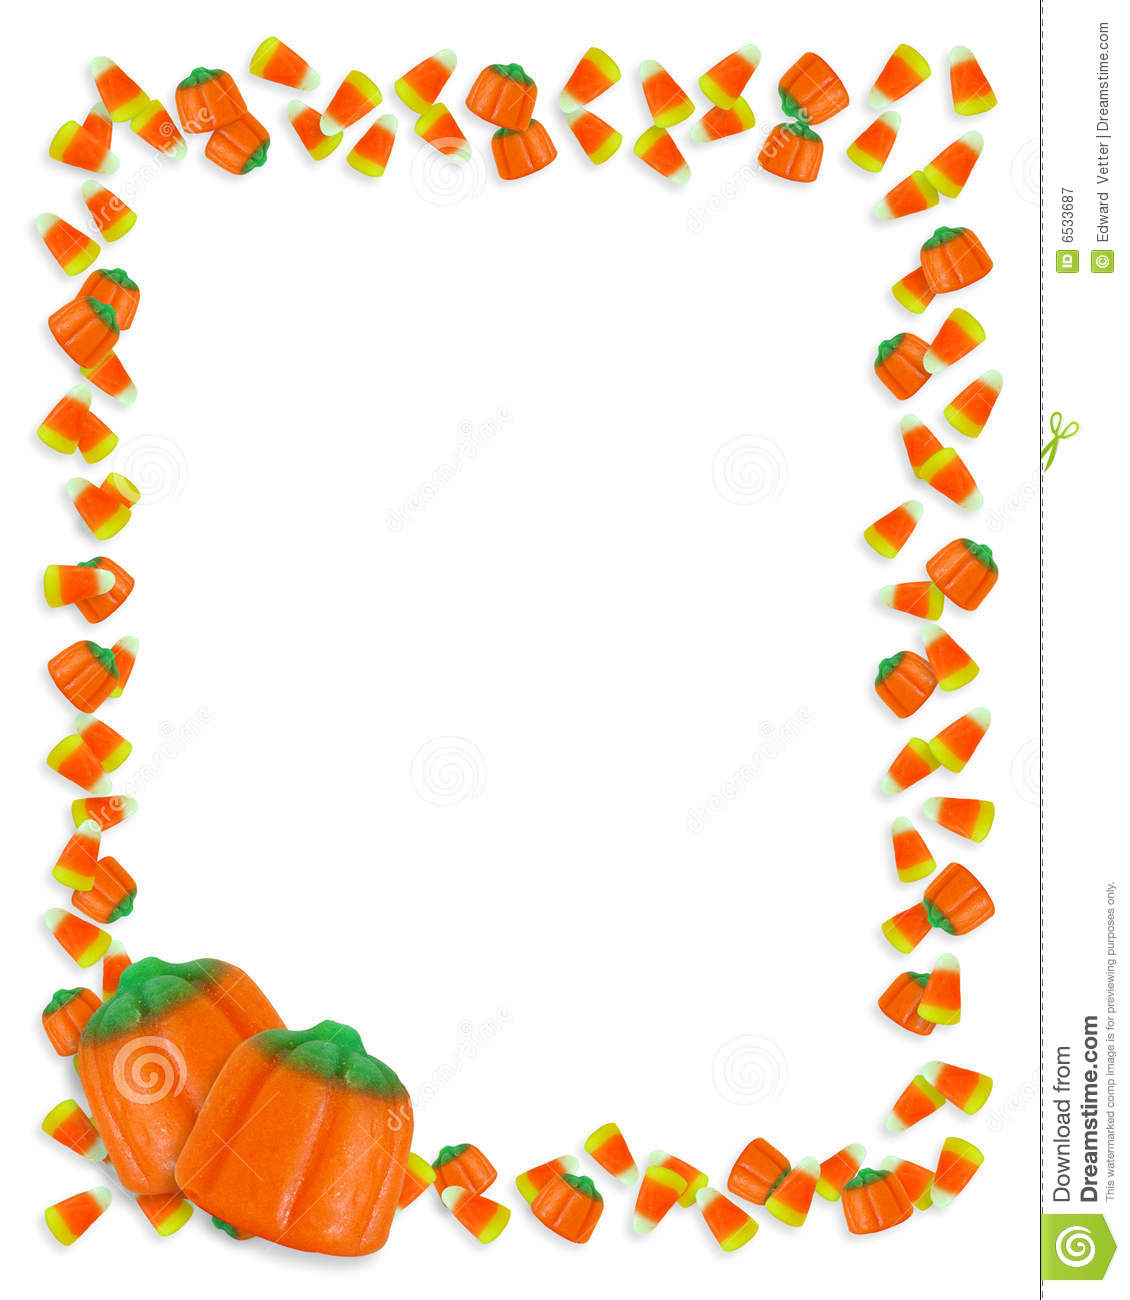 Halloween Border Candy Corn Royalty Free Stock Photography Image